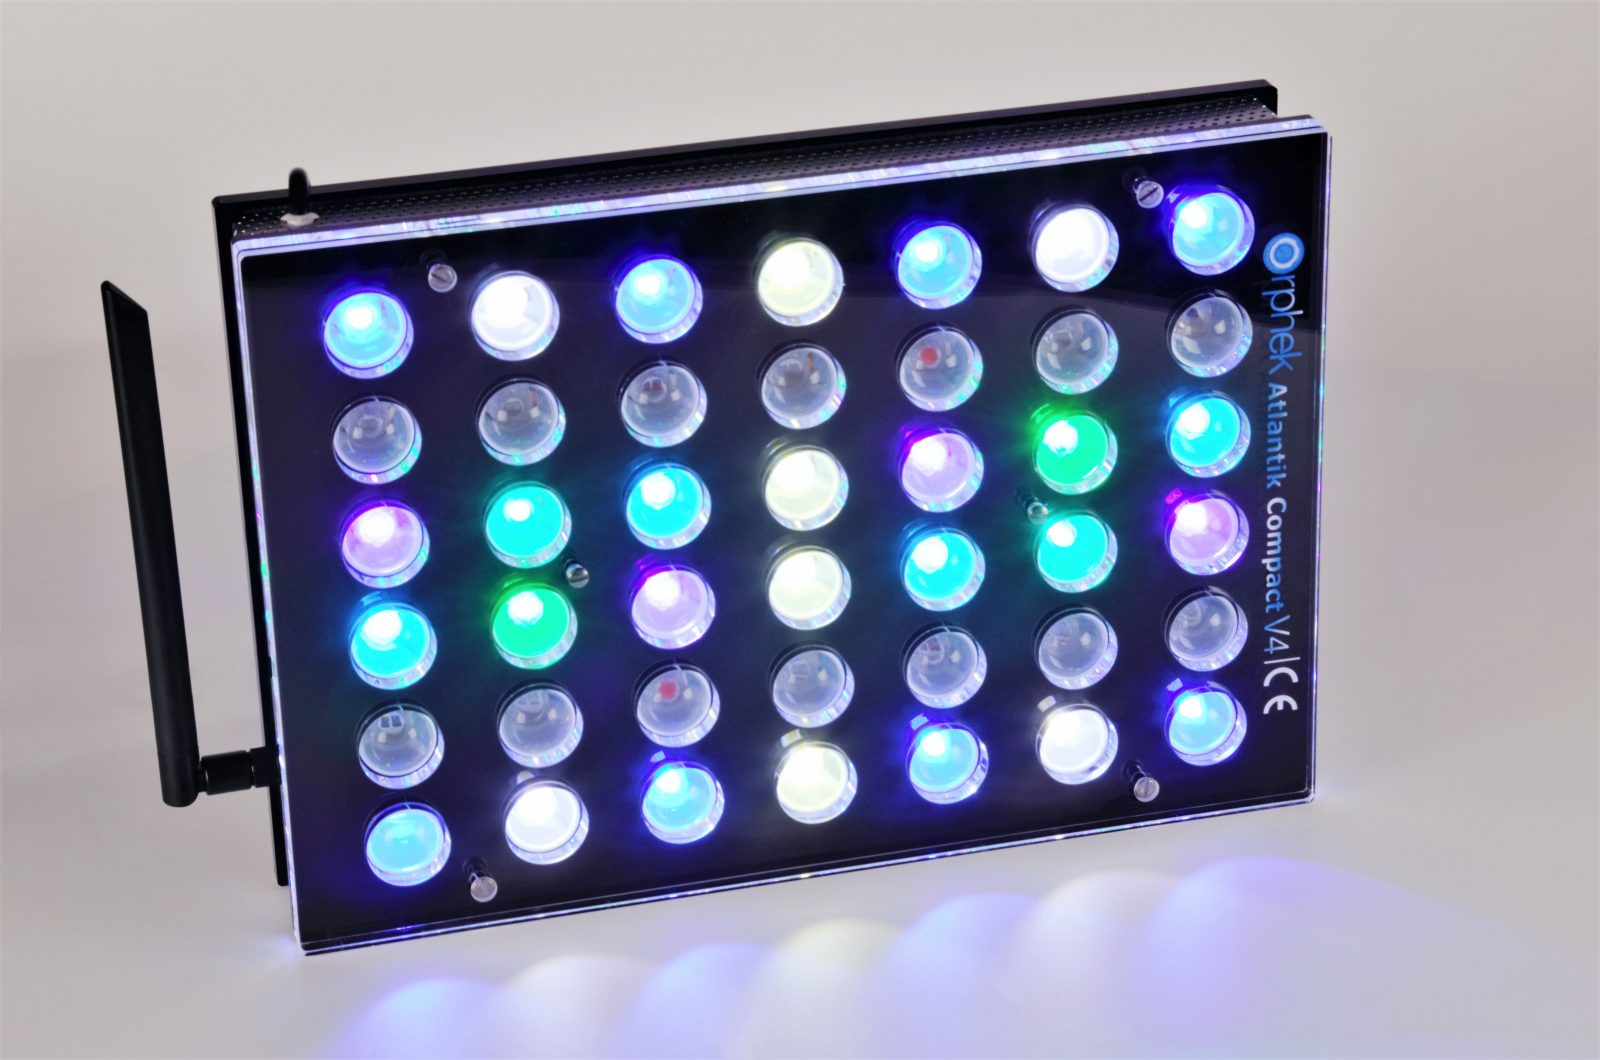 Orphek-Aquarium-LED-Lighting-Atlantik -Compact-V4-light -on-channel 1 + 2